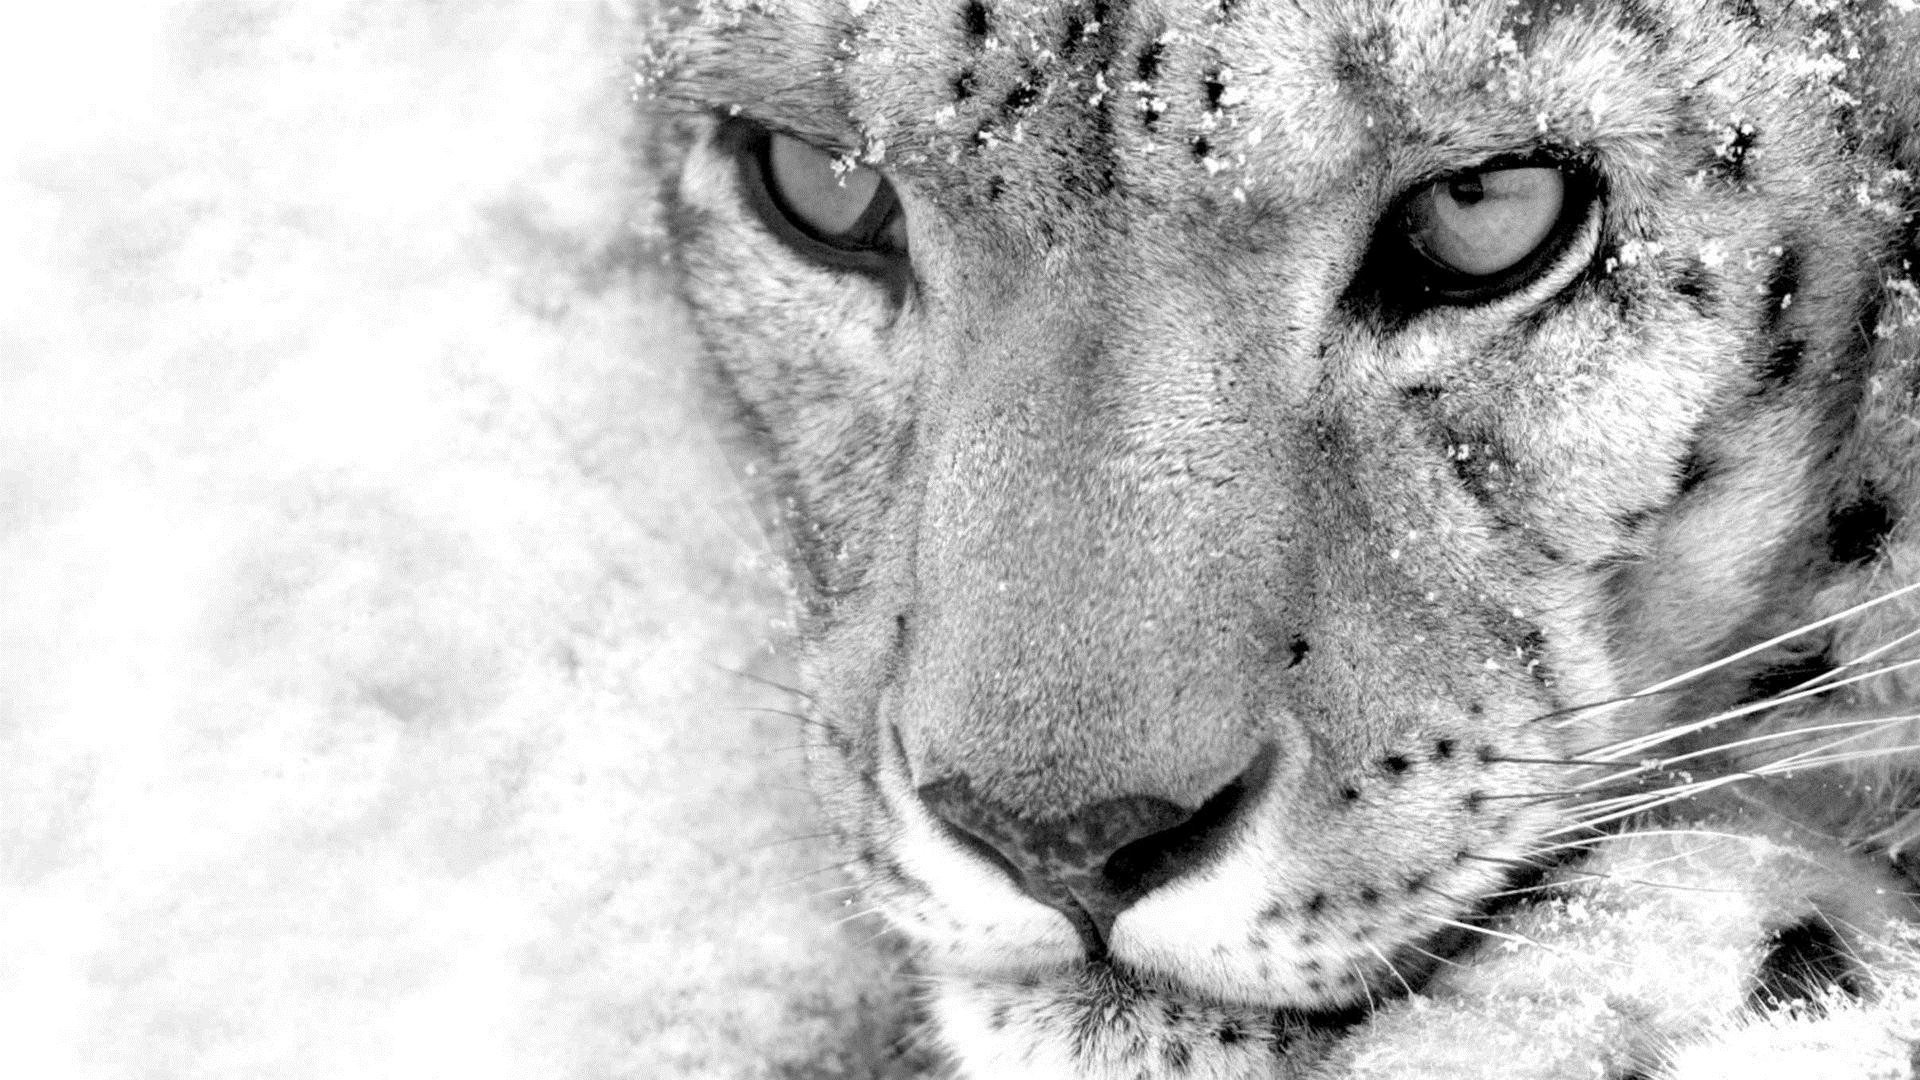 black and white leopard wallpaper - HD Desktop Wallpapers ...